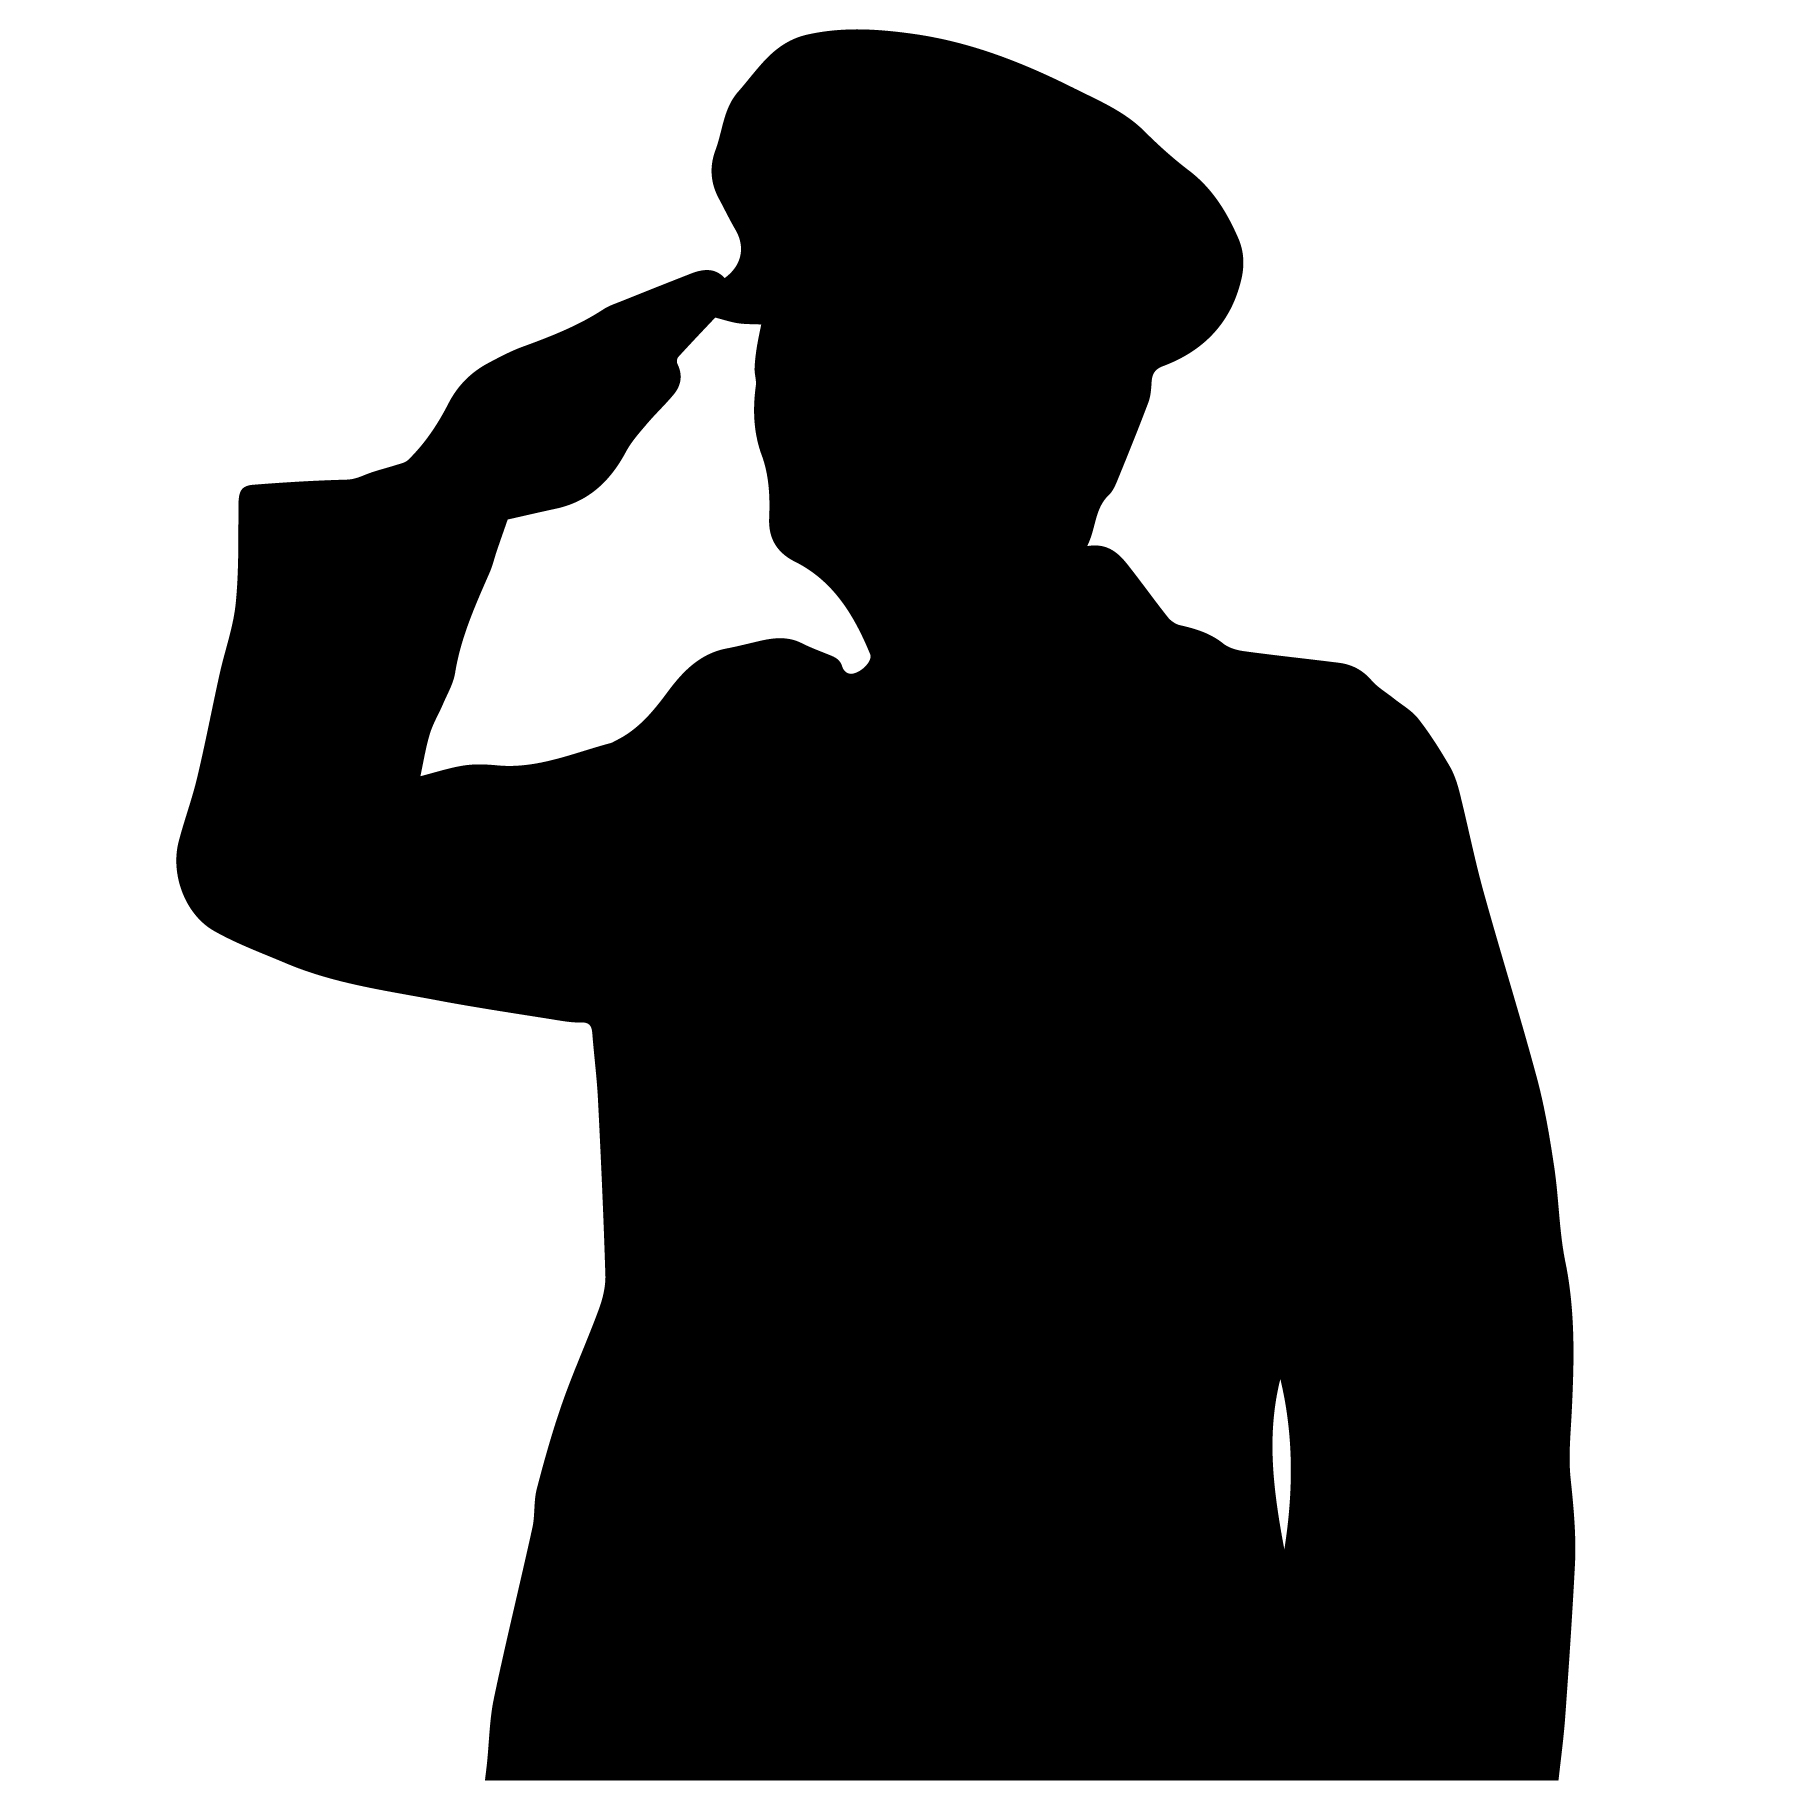 soldier salute silhouette military salute vector download free vectors clipart salute silhouette soldier